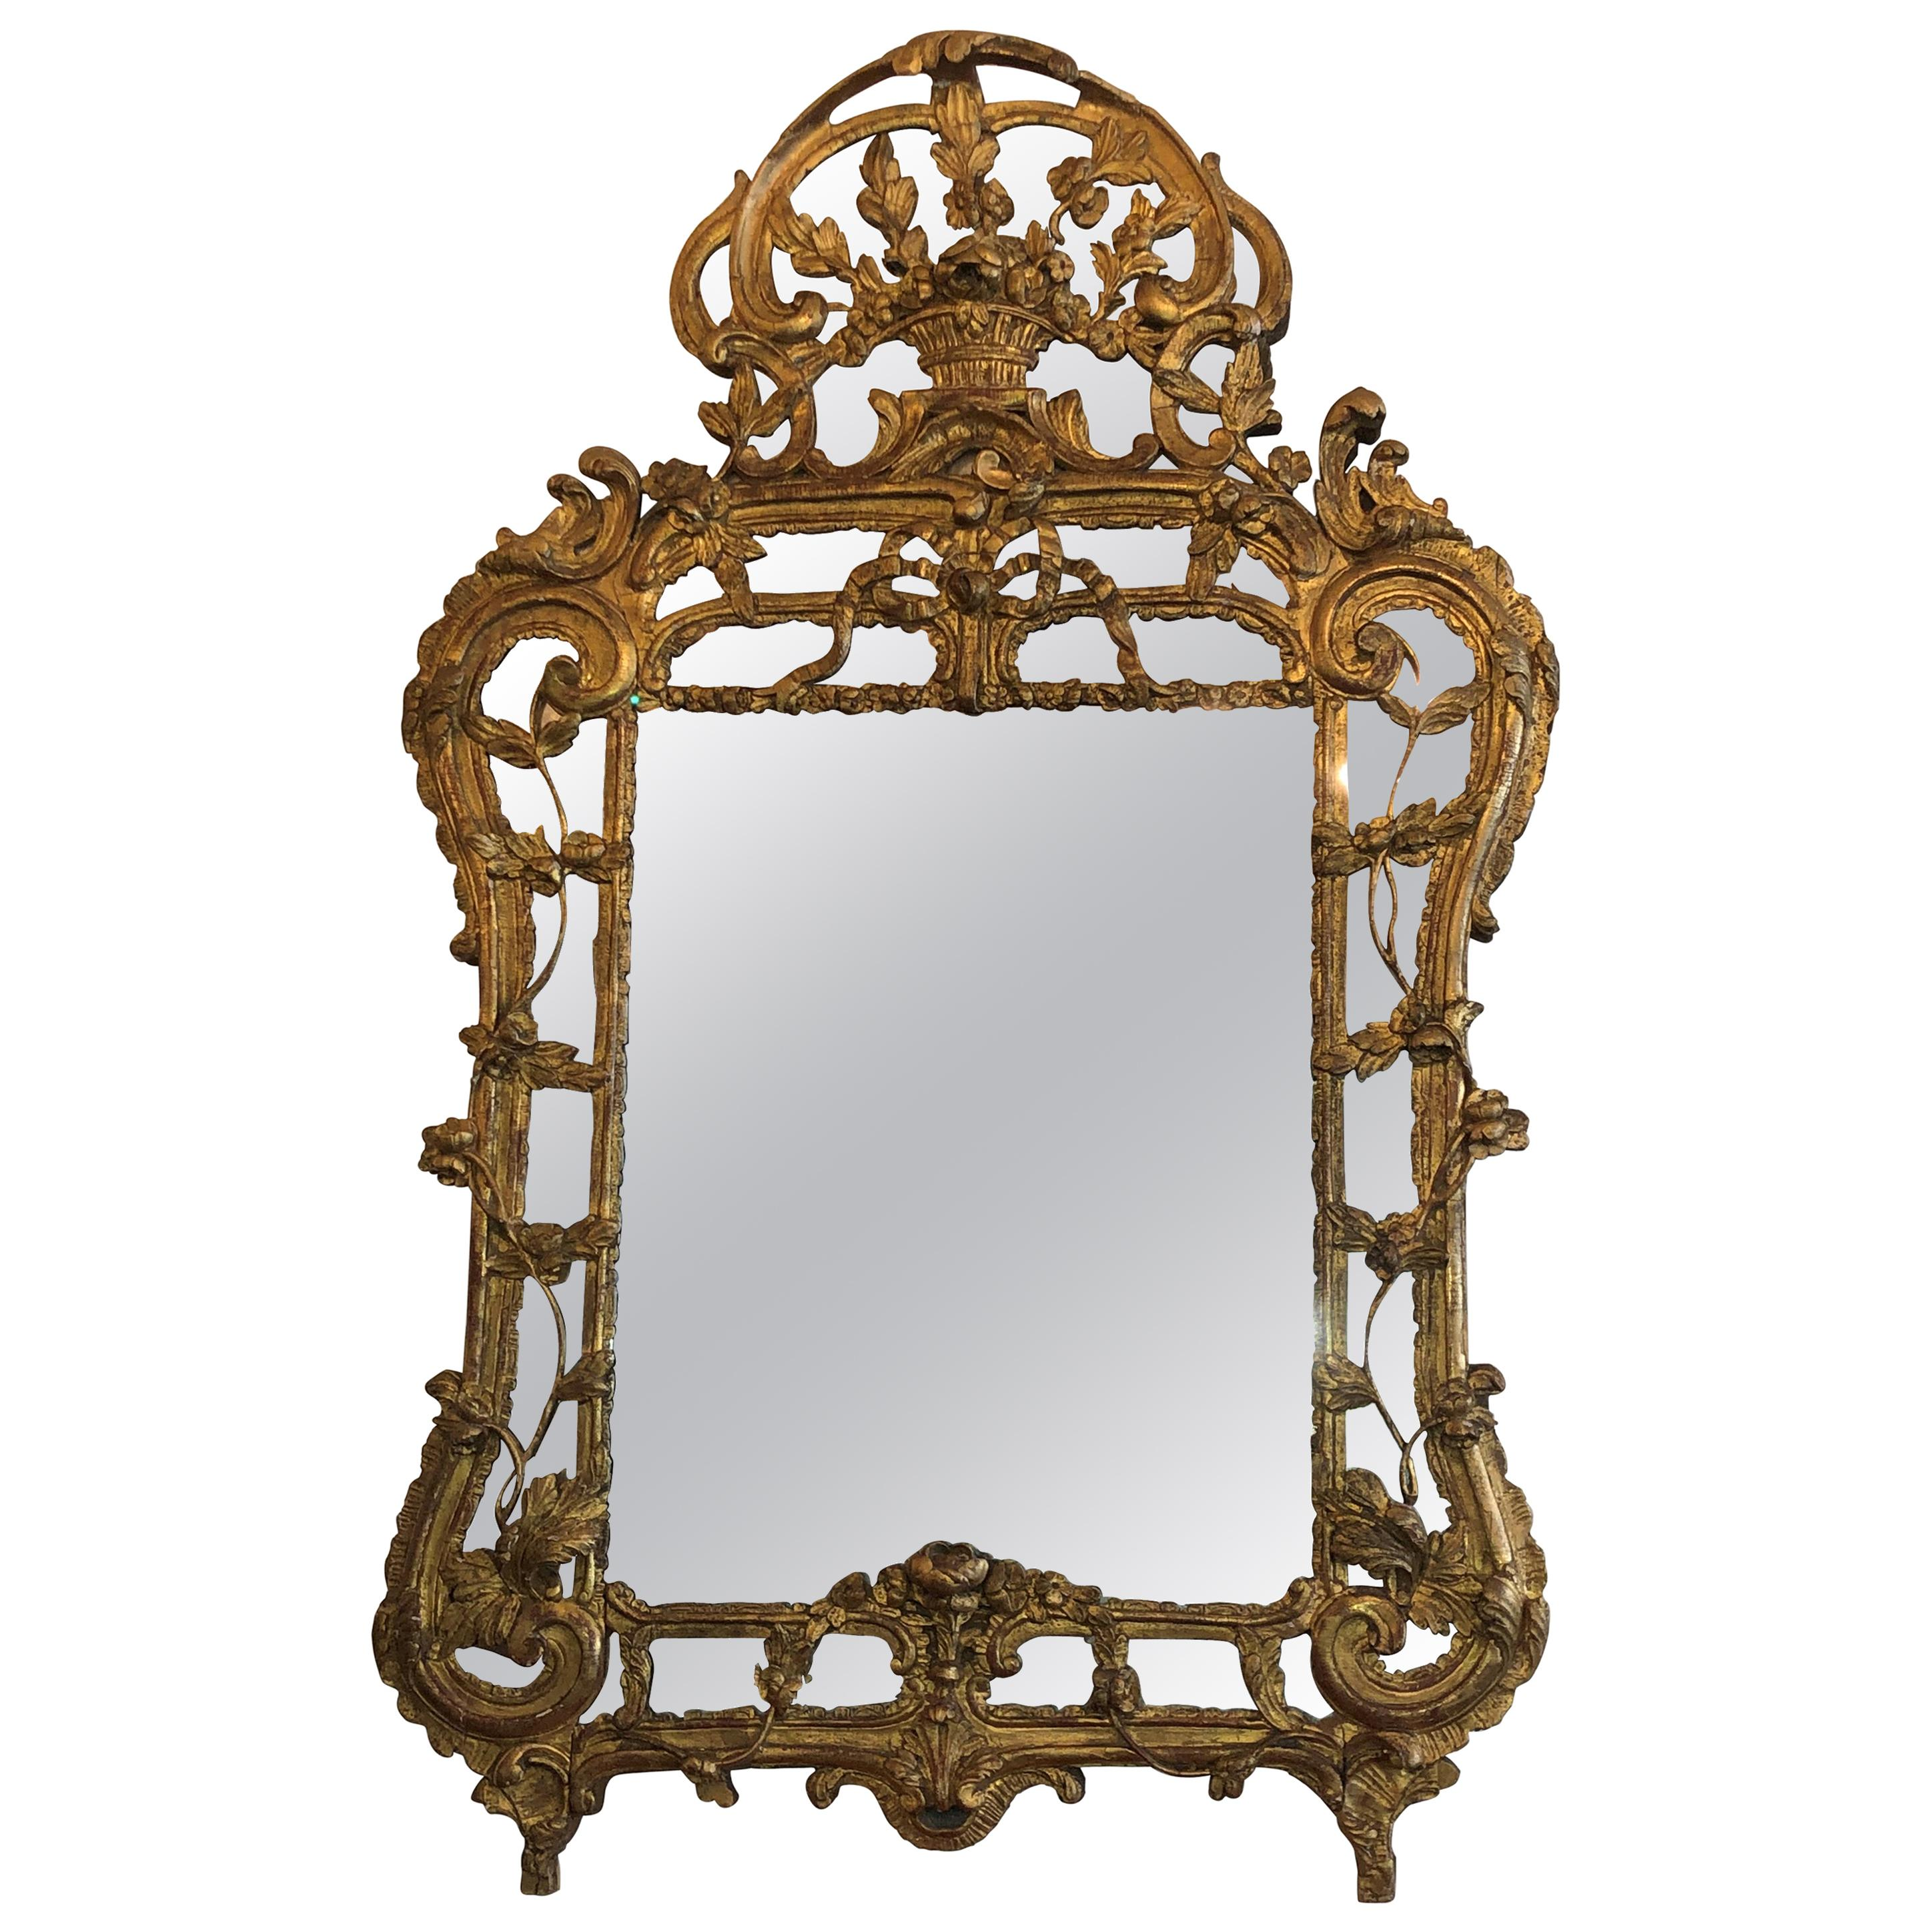 18th Century French Régence Giltwood Mirror